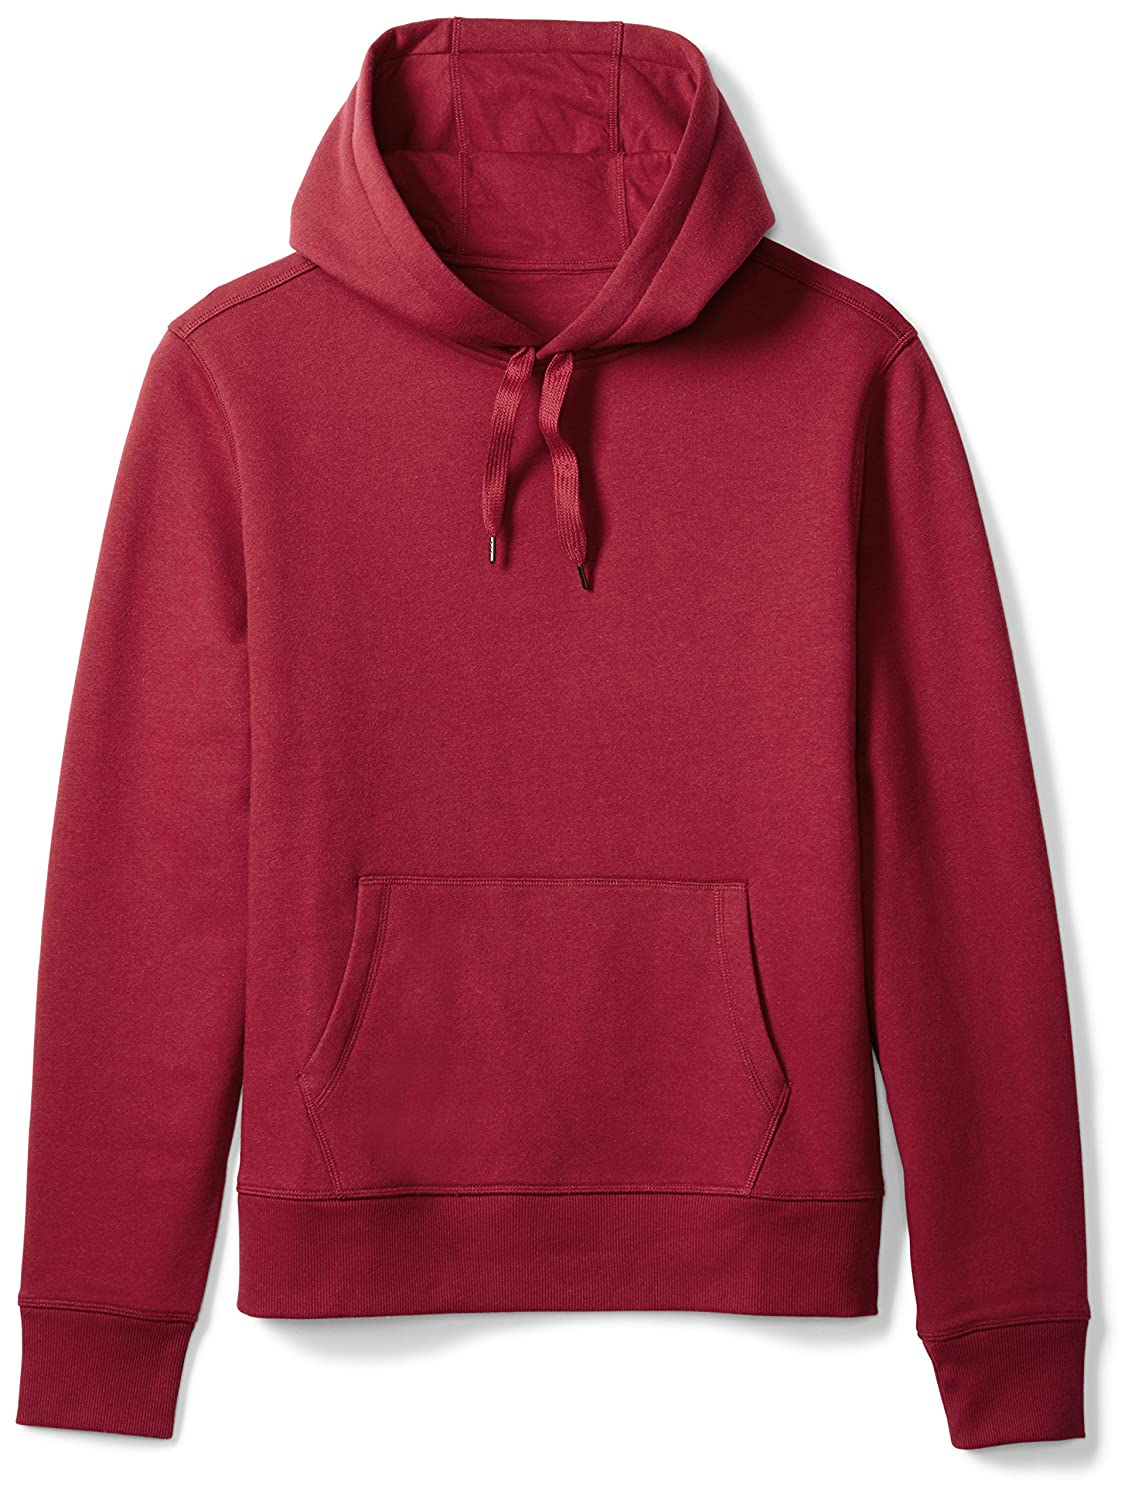 Amazon Essentials Men's Hooded Fleece Sweatshirt F17AE50001